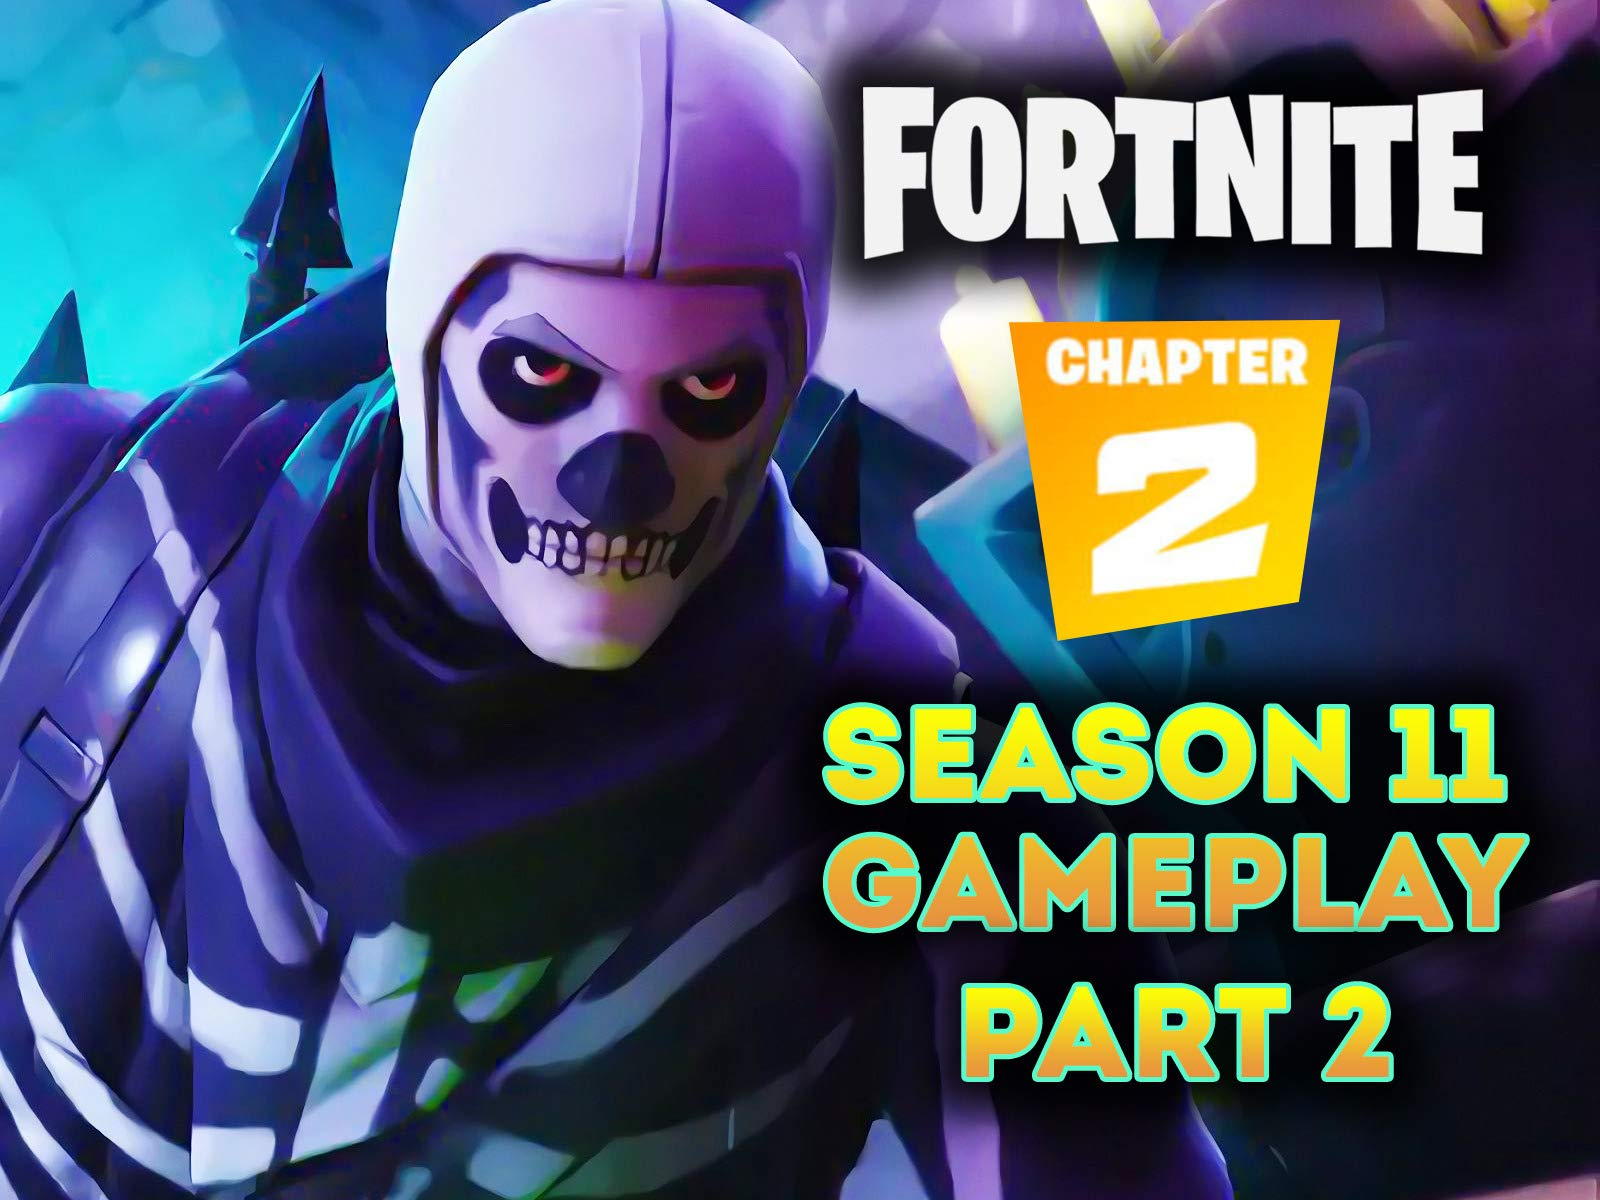 Watch Clip Fortnite Chapter 2 Season 11 Gameplay Part 2